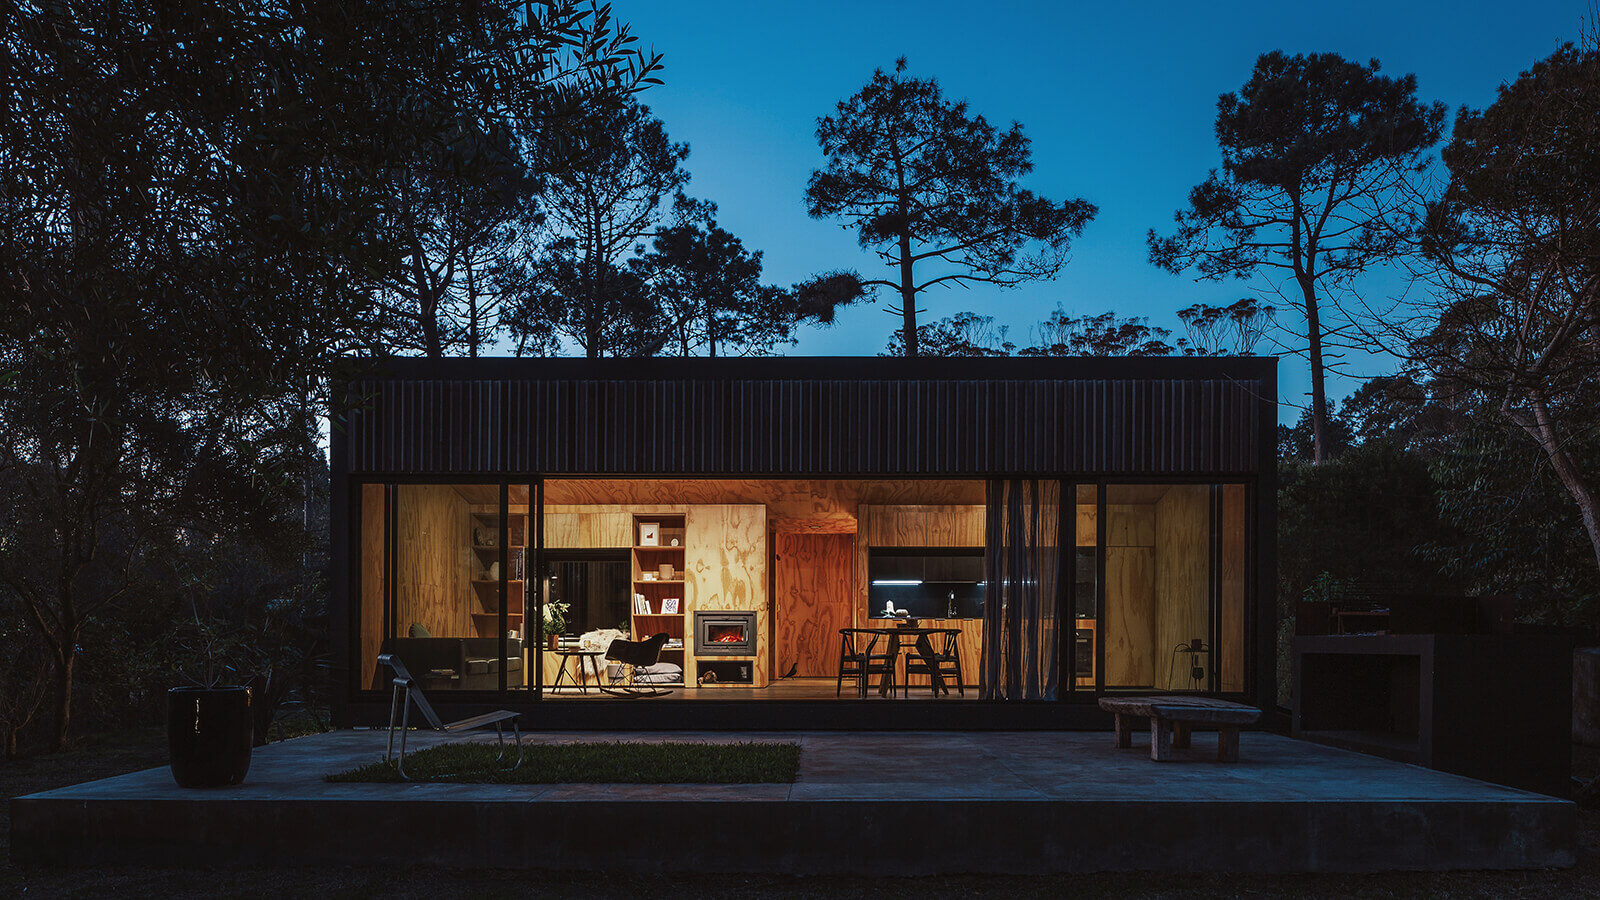 View of the cabin at night, showing the wood-clad interior